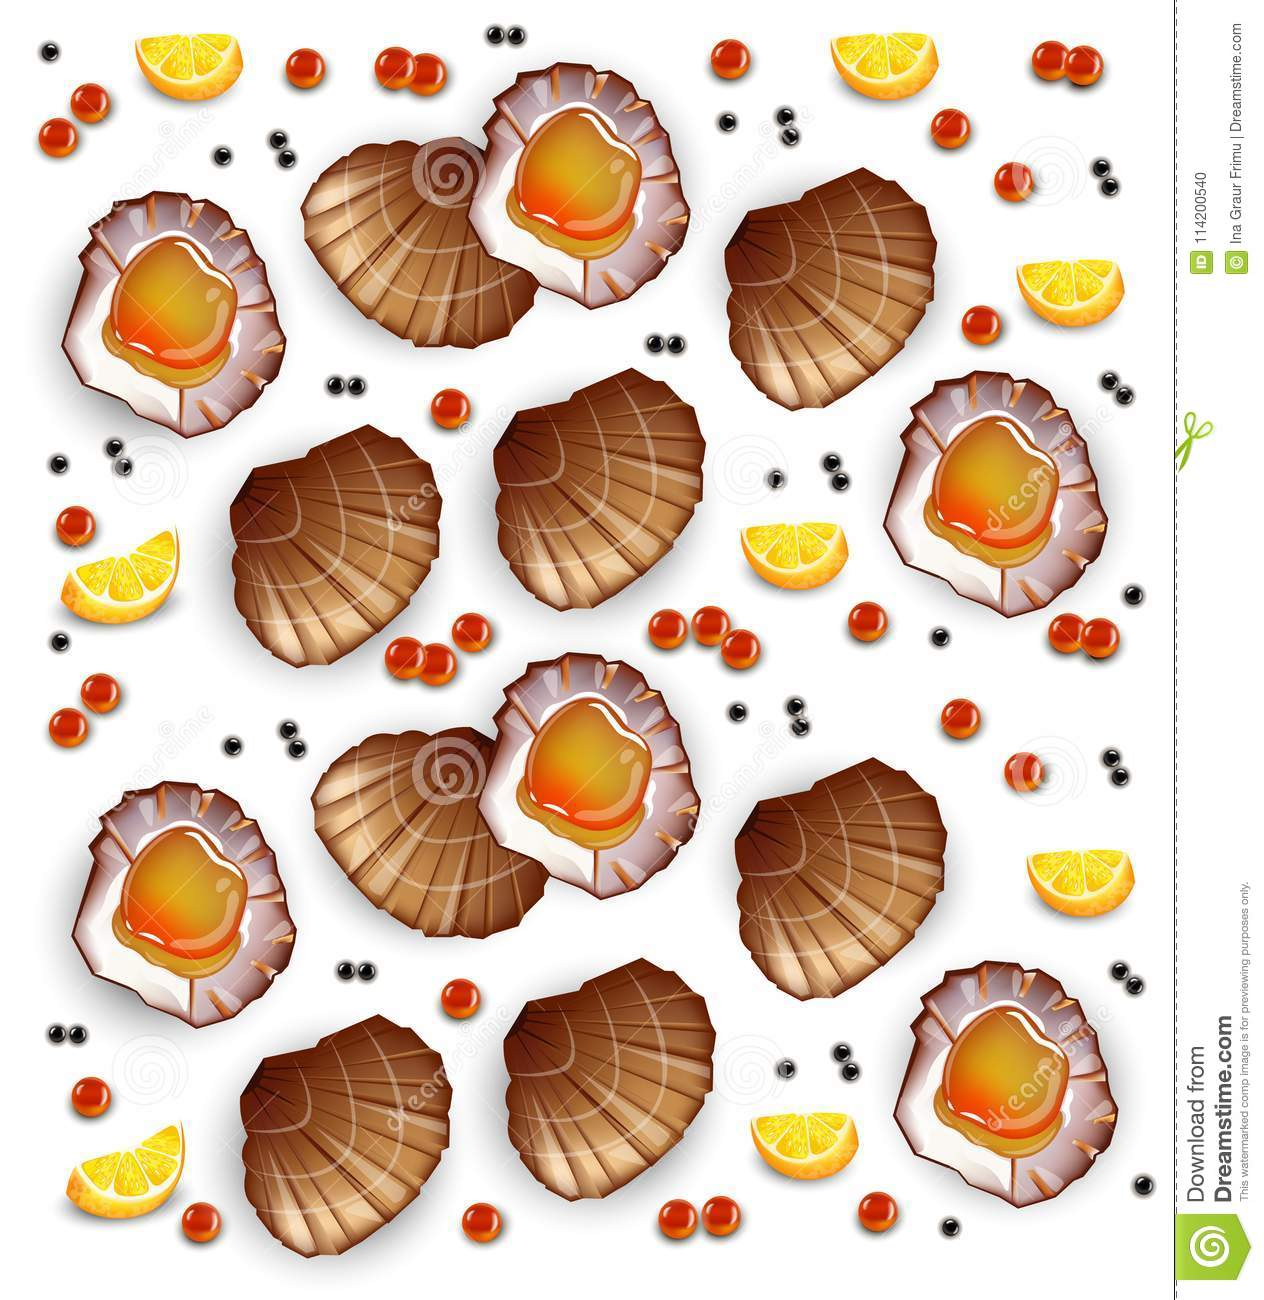 Scallops pattern Vector realistic seafood. Fresh shellfish. 3d detailed illustrations